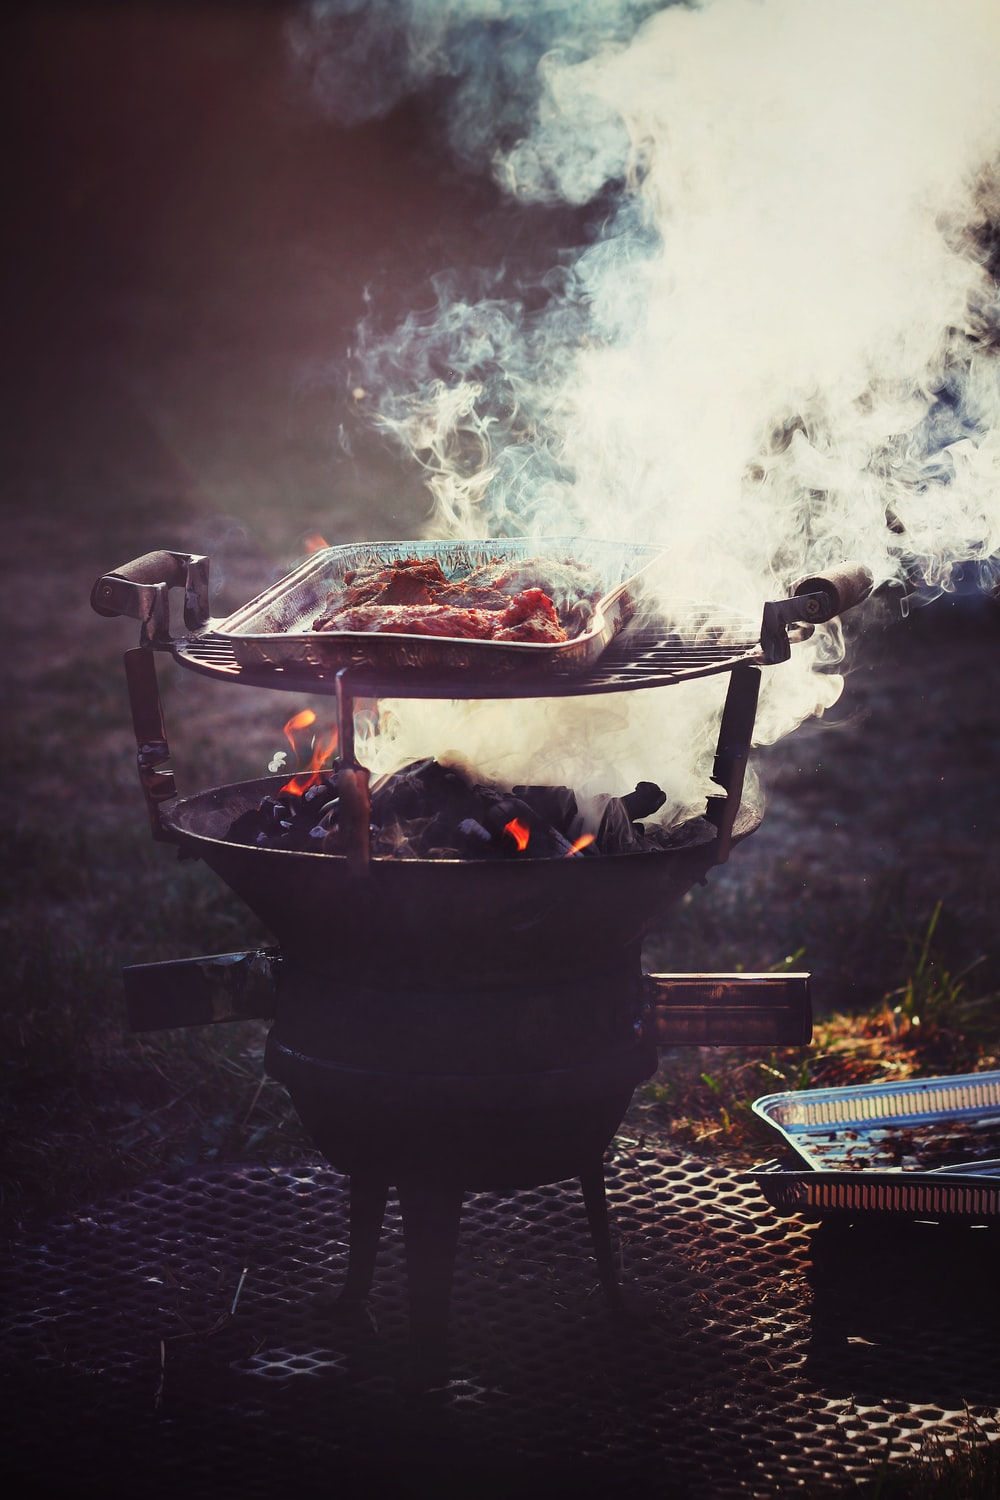 smoking charcoal grill